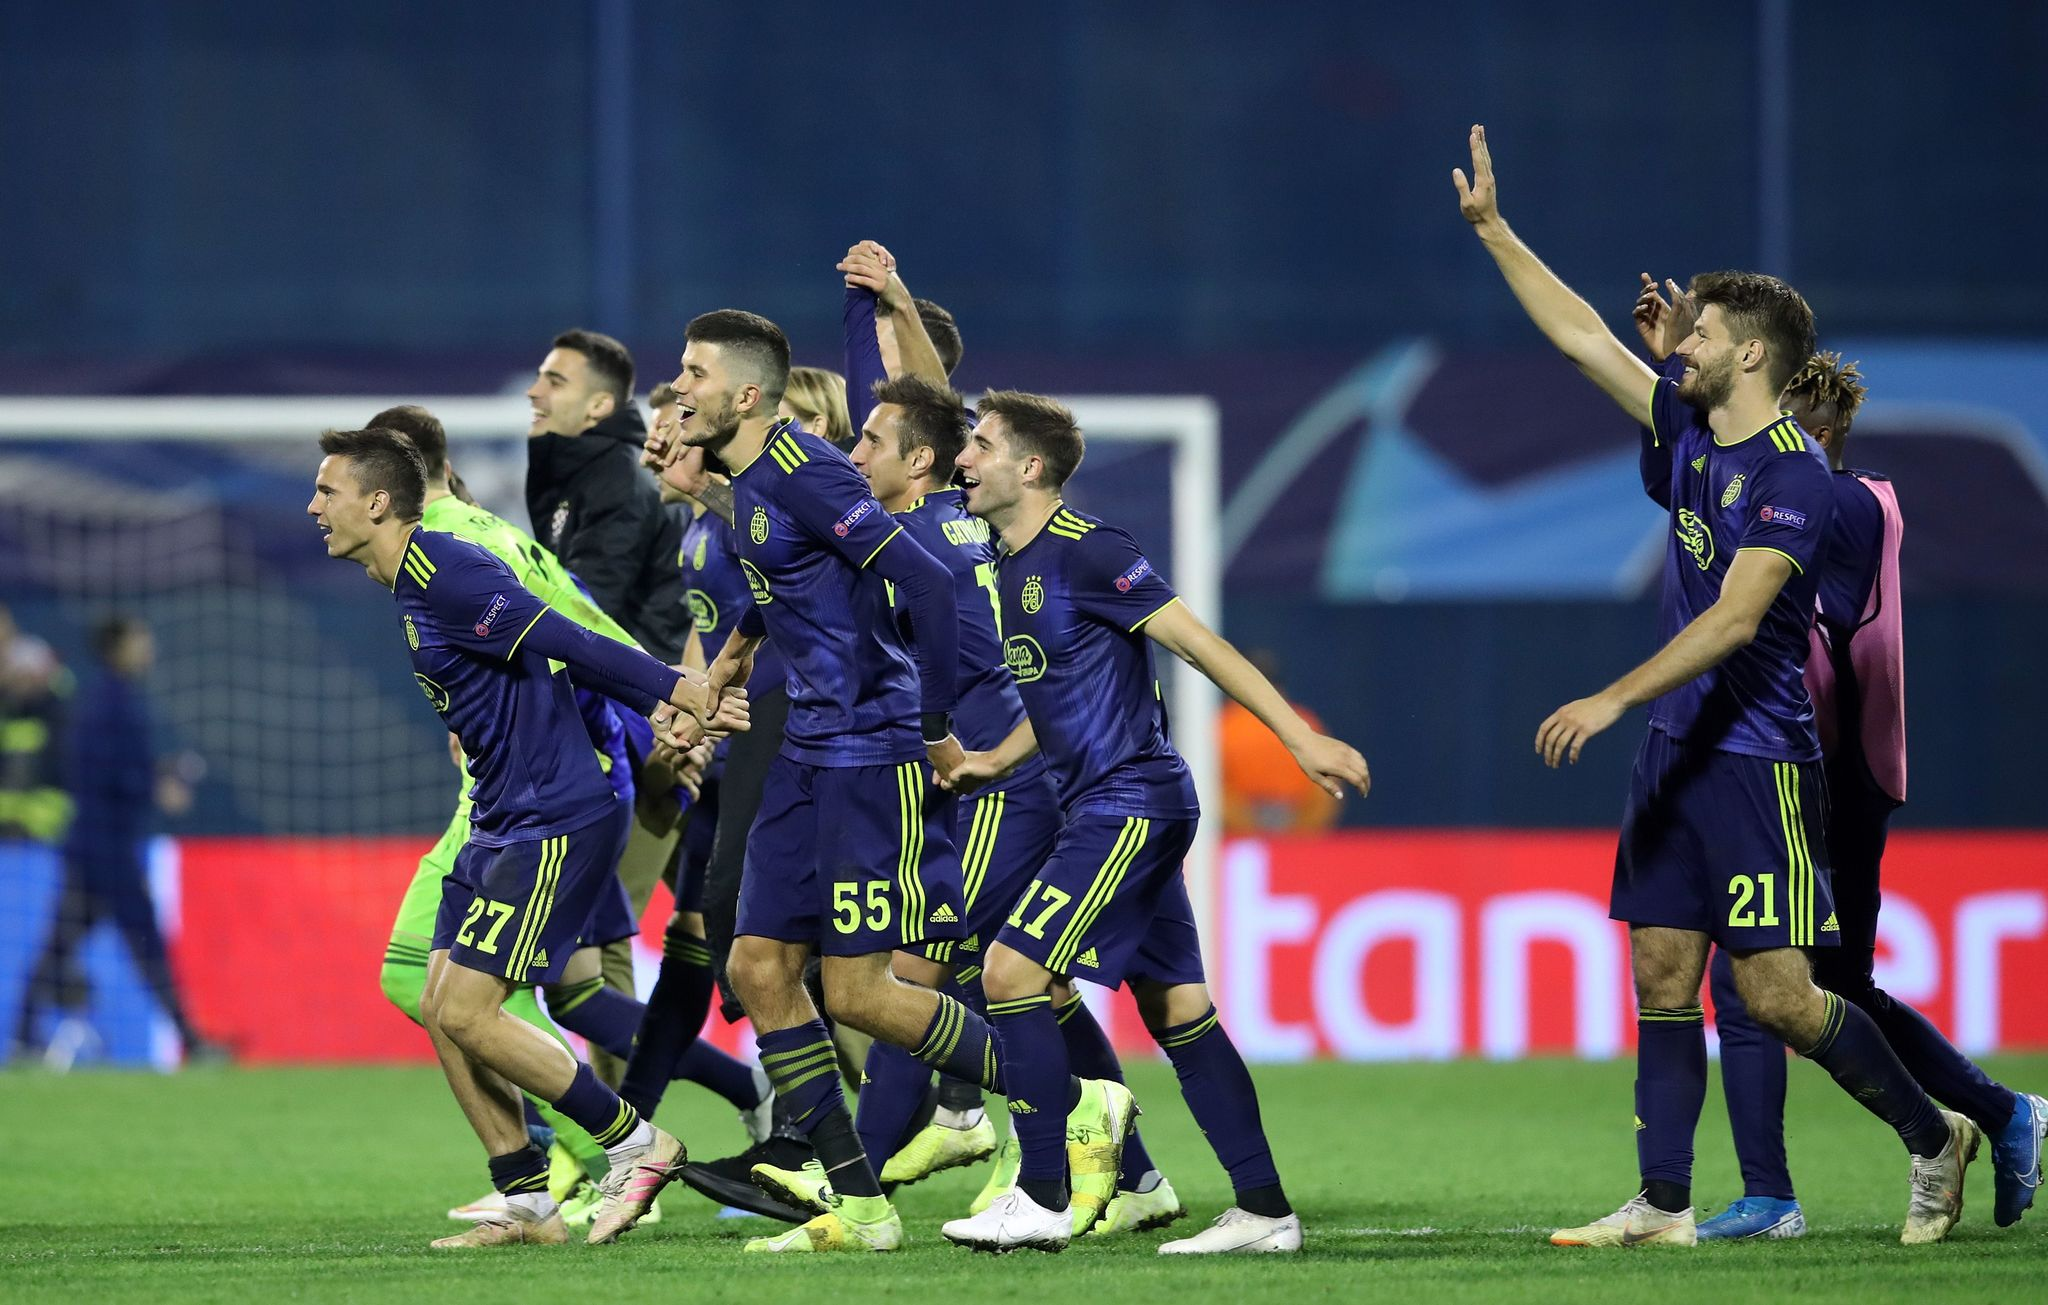 Dinamos players celebrate their victory at the end of the UEFA Champions League Group C football match GNK Dinamo vs <HIT>Atalanta</HIT> BC in Zagreb, Croatia, on September 18, 2019. - Dinamo won the match 4-0. (Photo by Damir SENCAR / AFP)